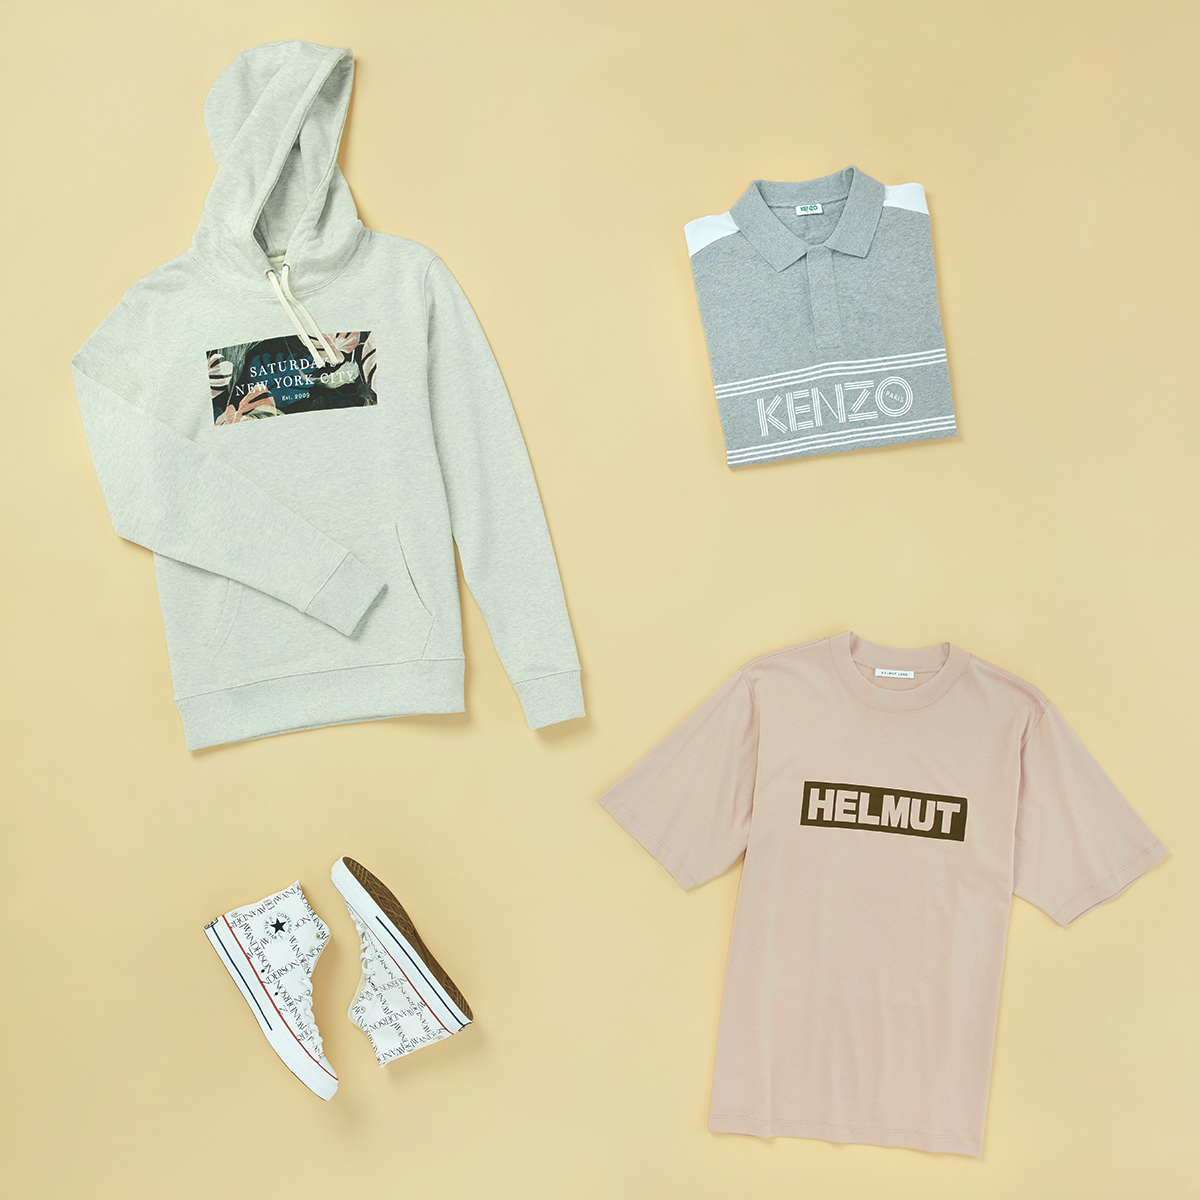 Four articles of men's clothing featuring logos - Converse sneakers, a Helmut Lang tee, a Kenzo polo, and a Saturdays NYC hoodie - laid flat on a light yellow background.